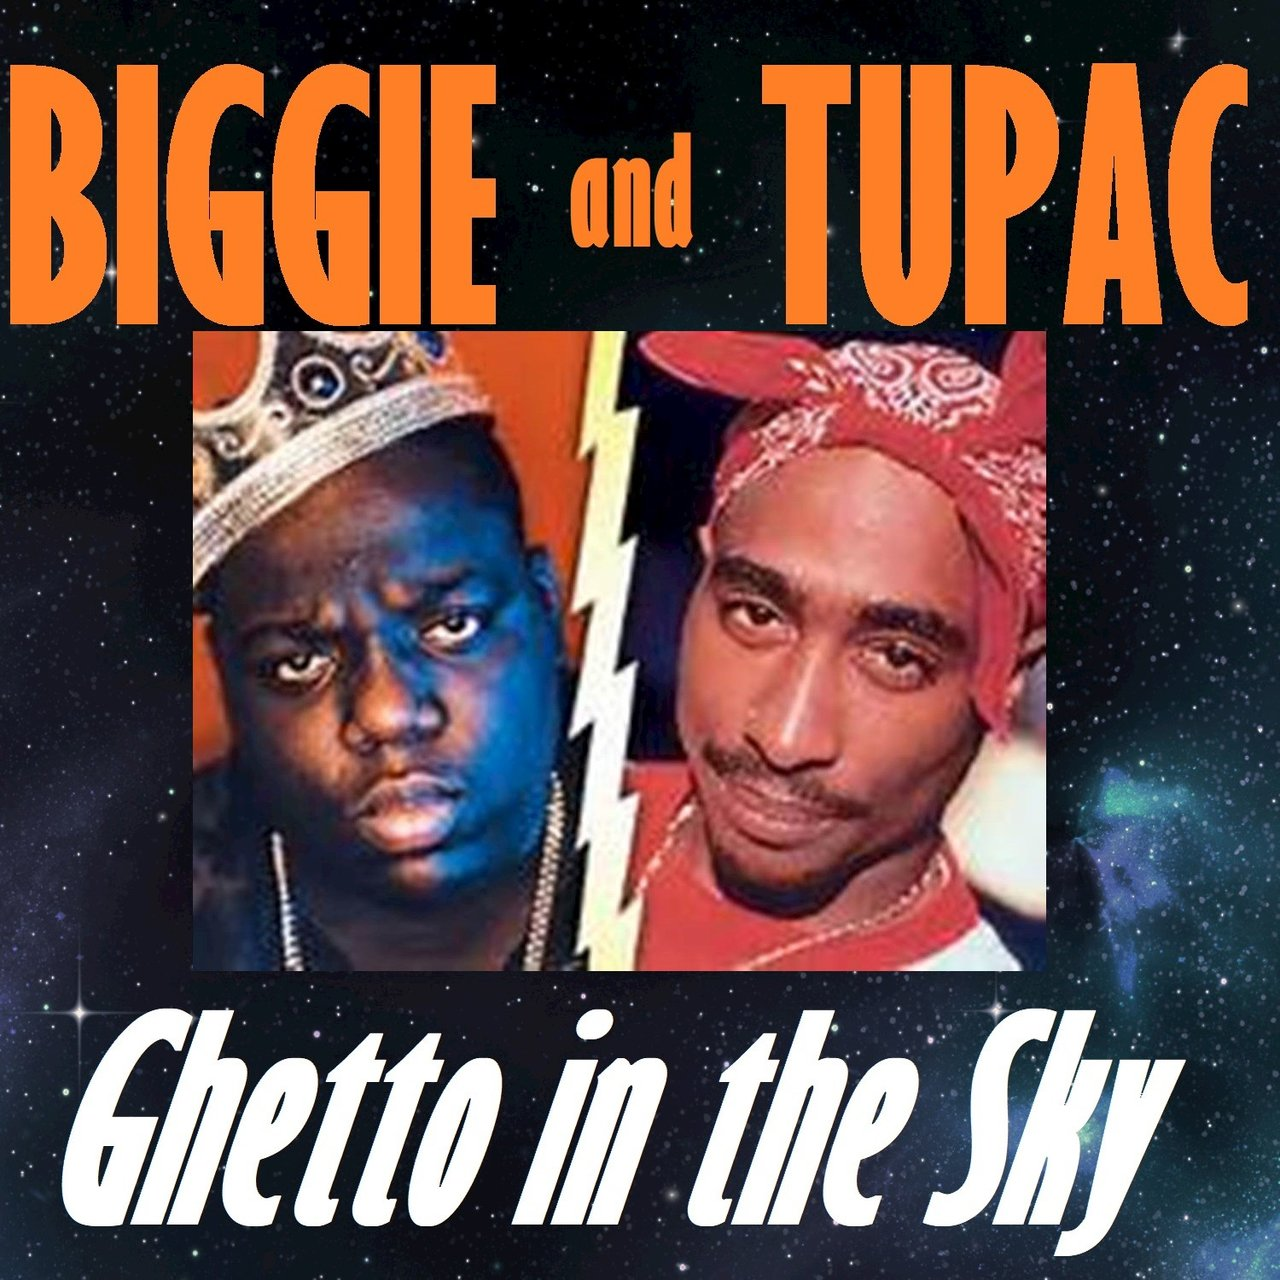 Ghetto in the Sky (Junior M.A.F.I.A. Presents)